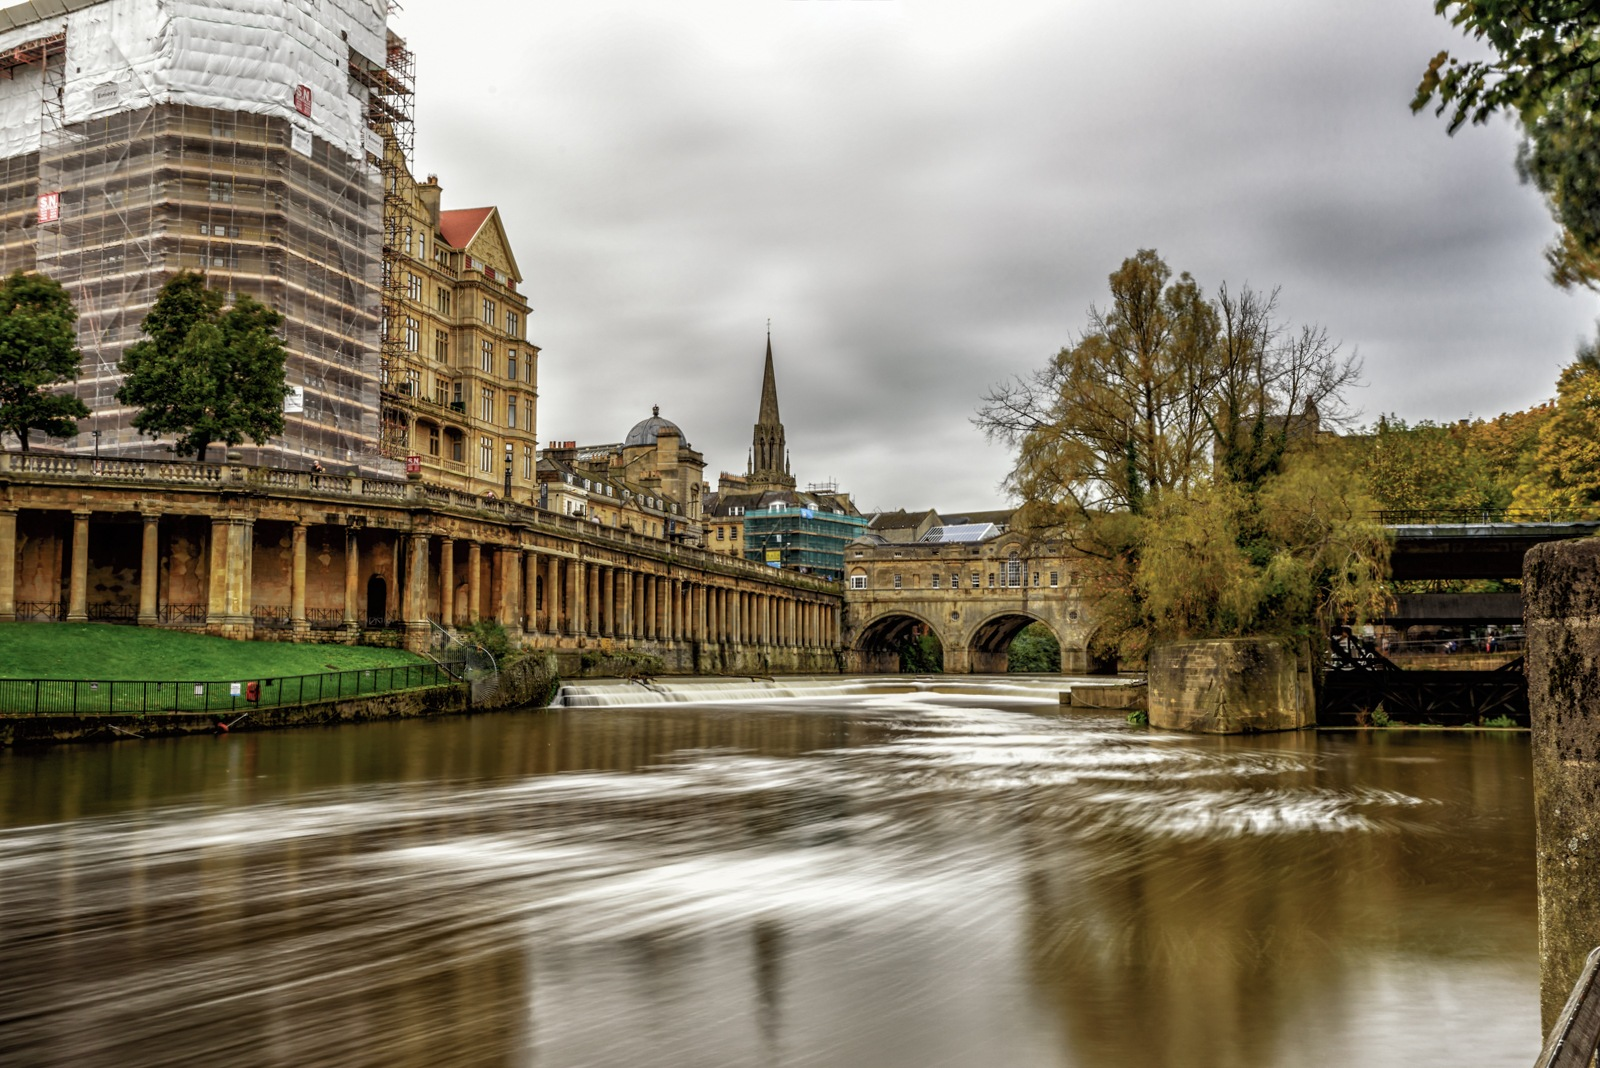 River side view by Paul Dyer